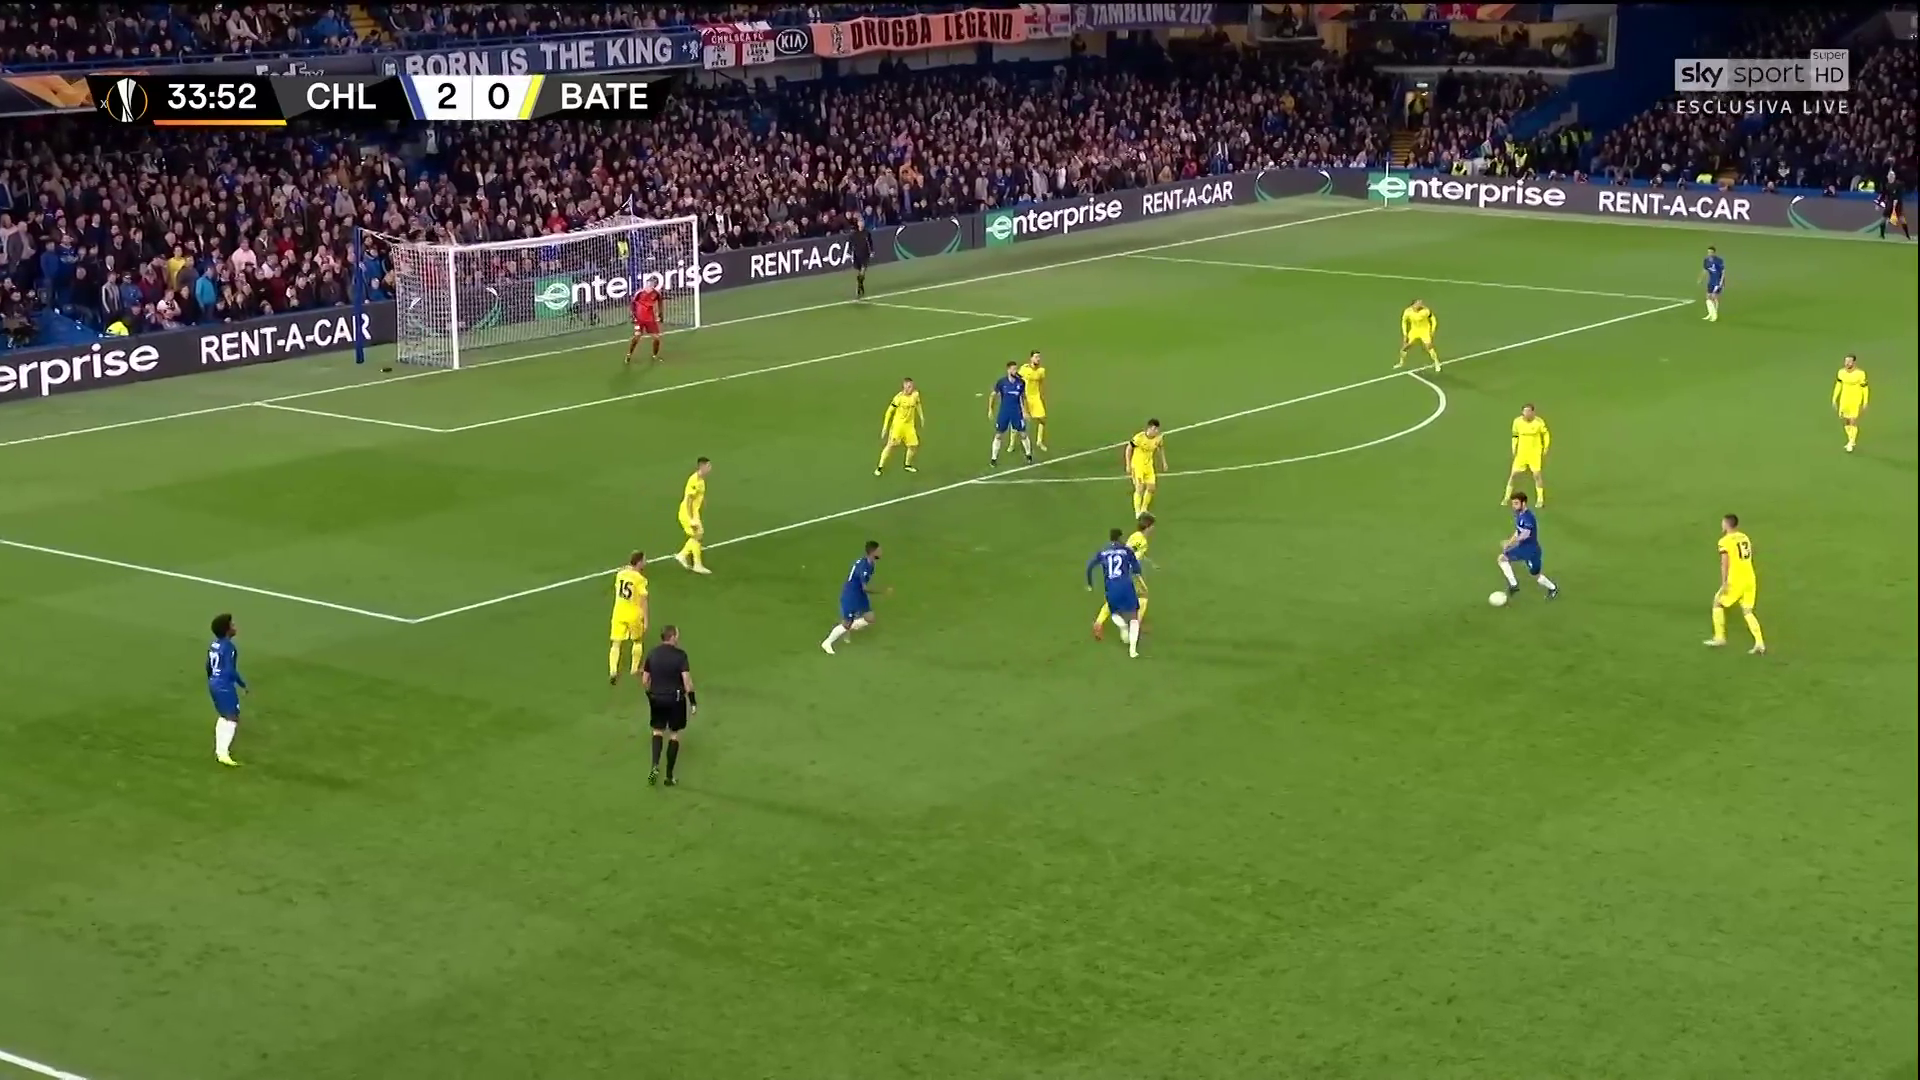 Chelsea BATE Match AnalysisChelsea BATE Match Analysis